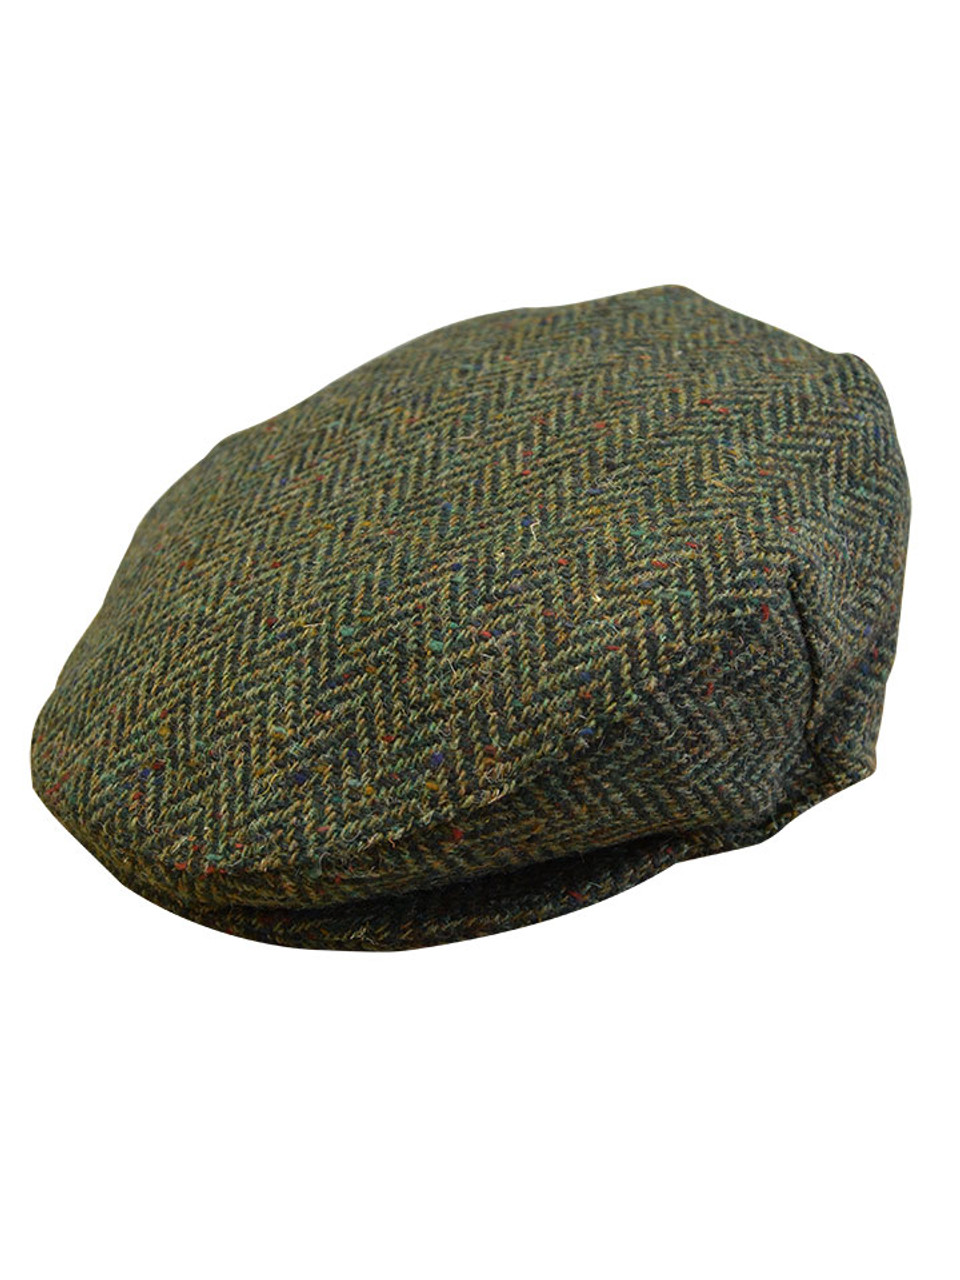 9467da082 Children's Tweed Flat Cap - Green